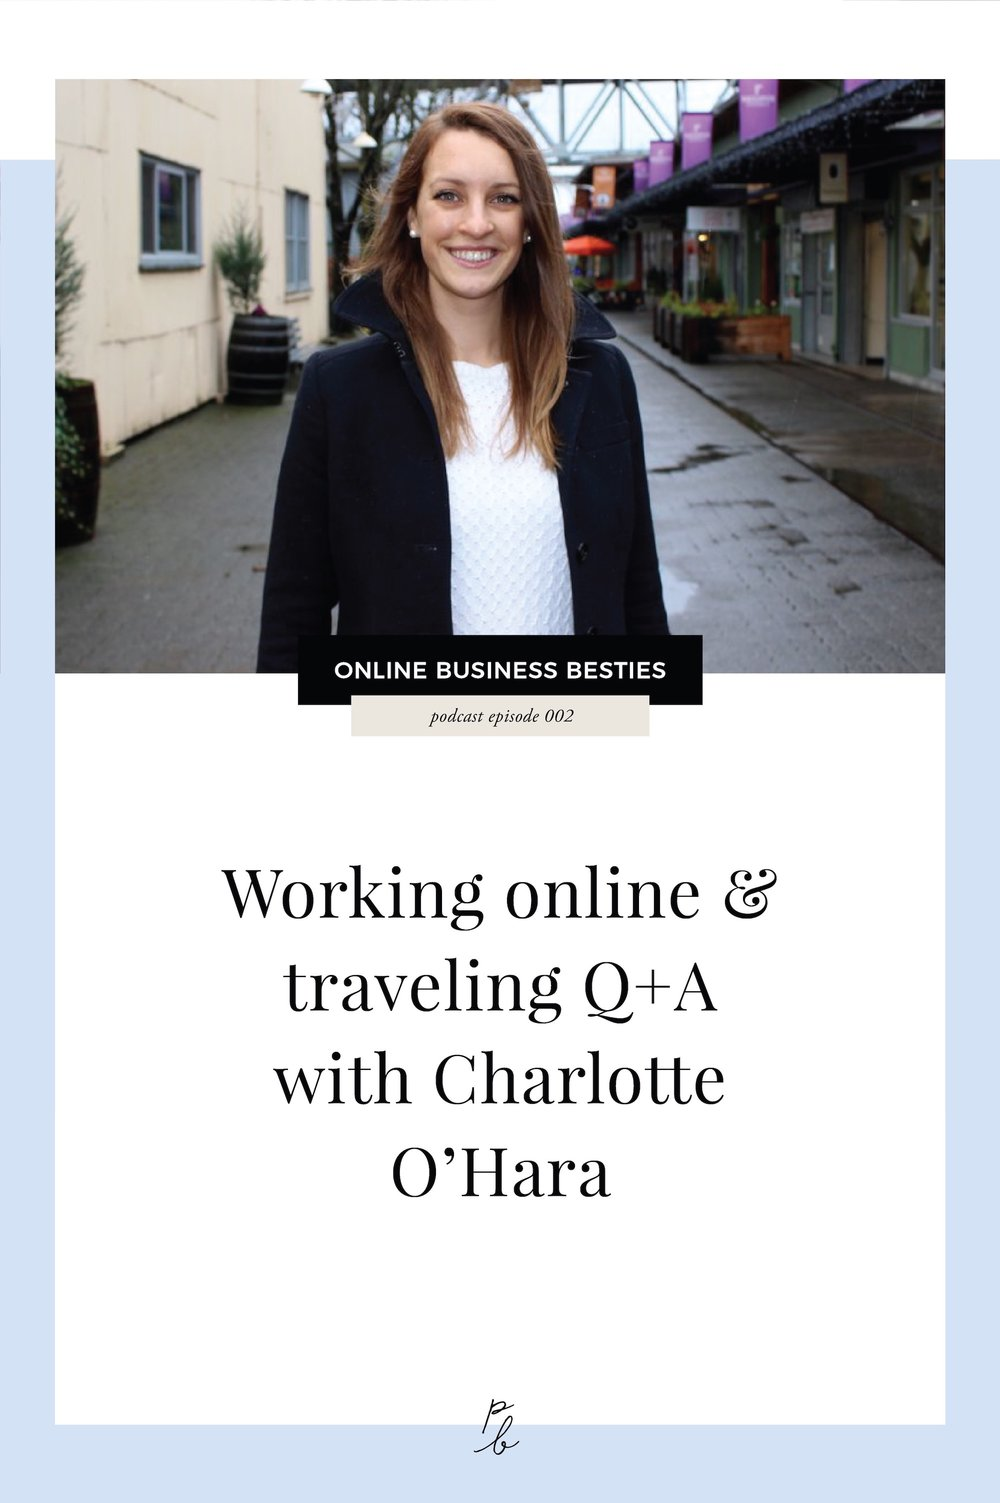 working+online+&+traveling+Q+A+with+charlotte+o'hara.jpg